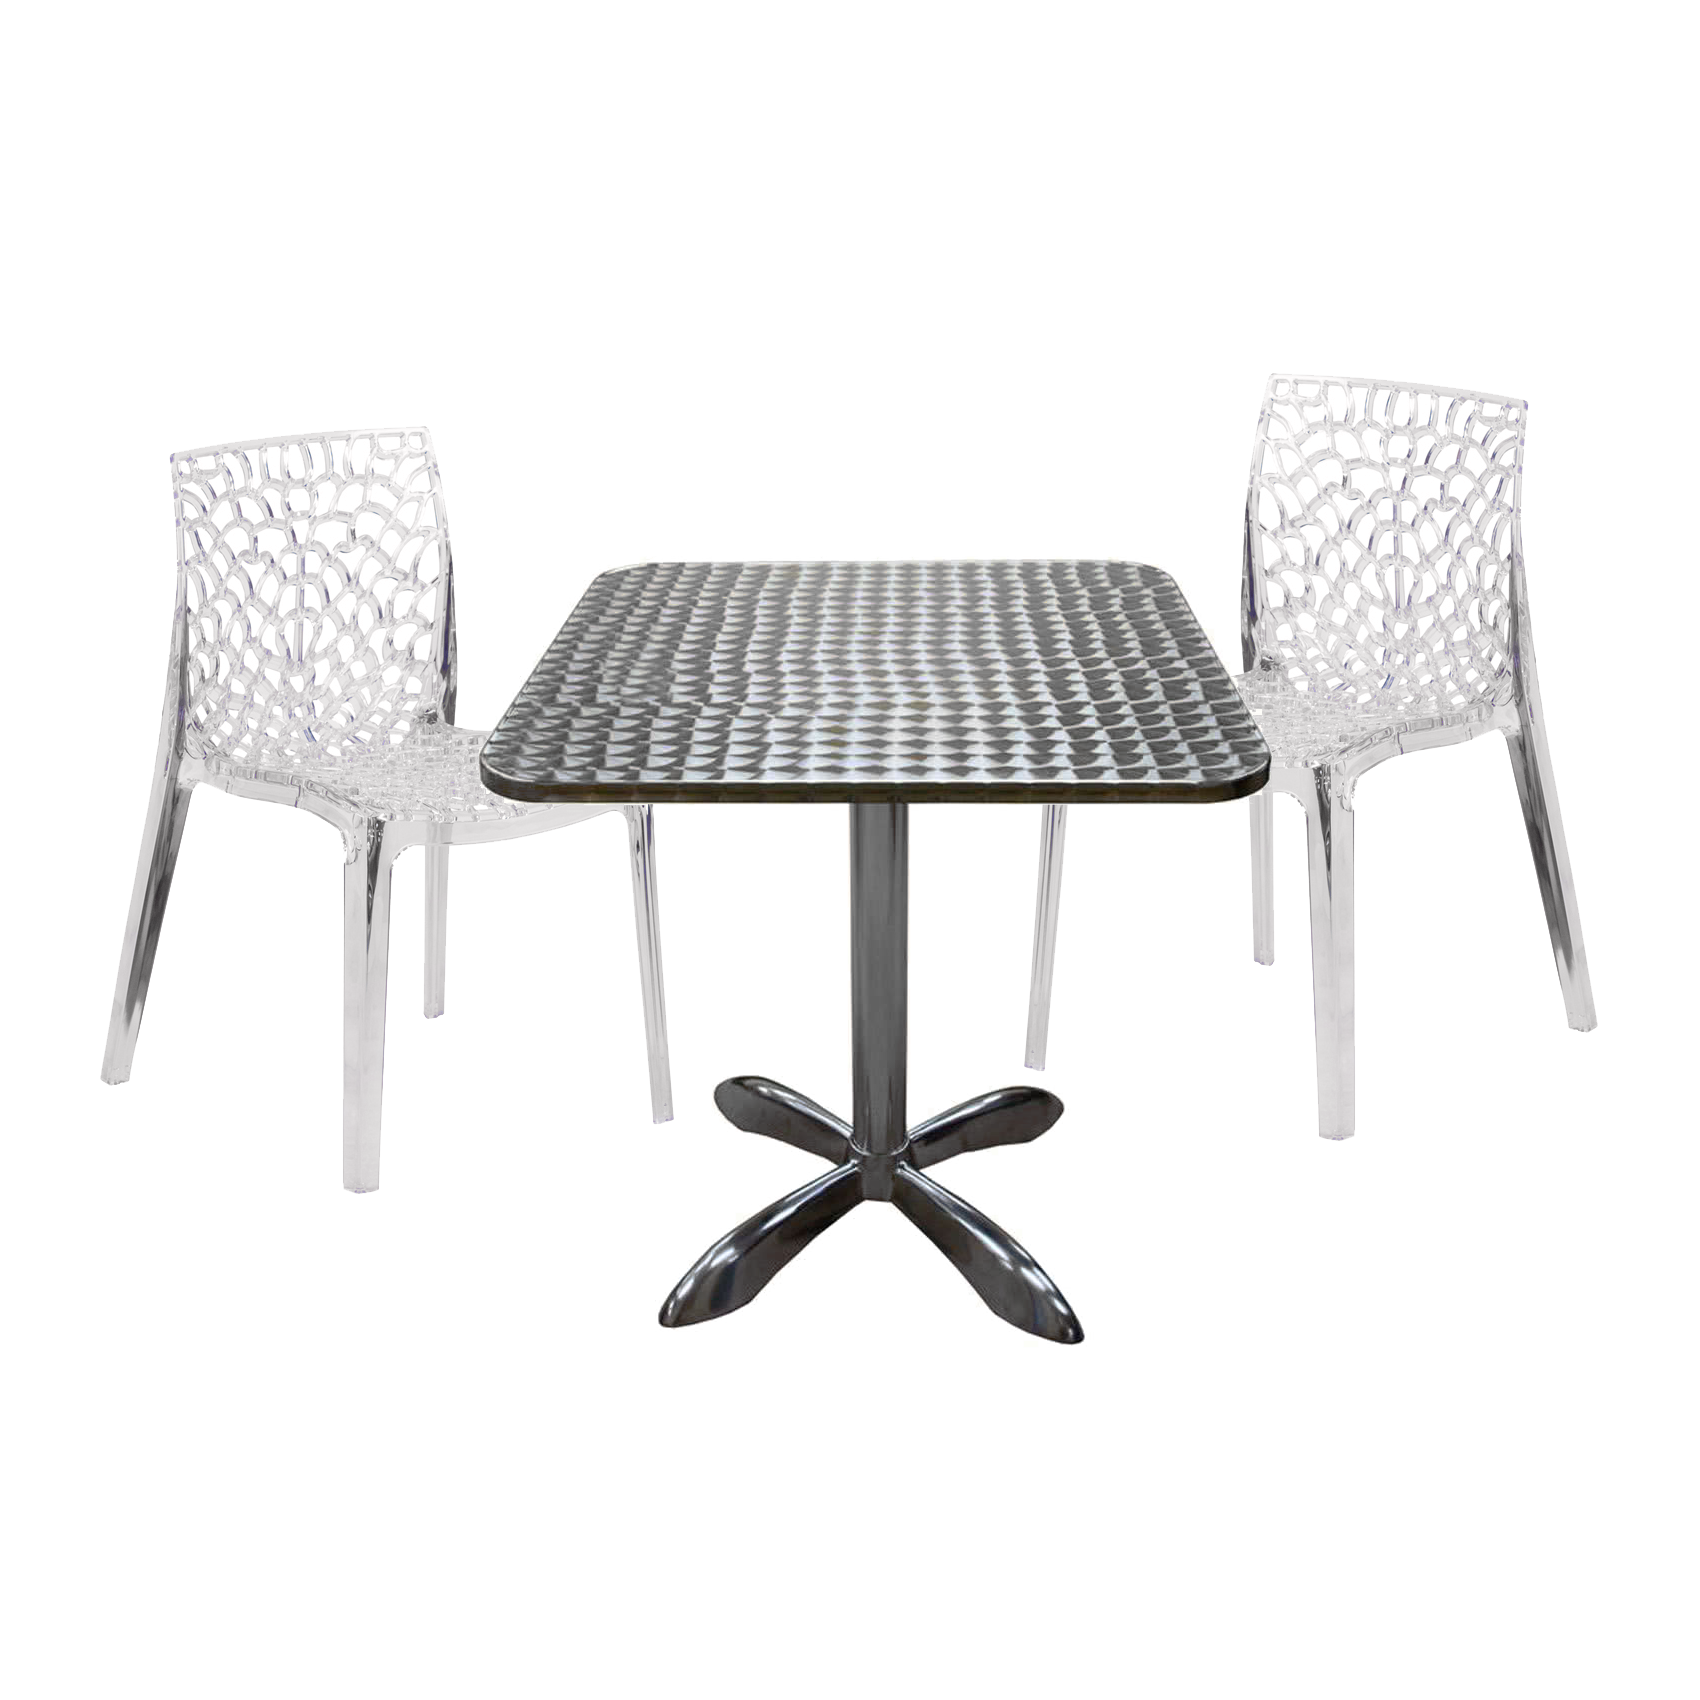 Aluminum Table with Artistic Crystal Stackable Chair Restaurant